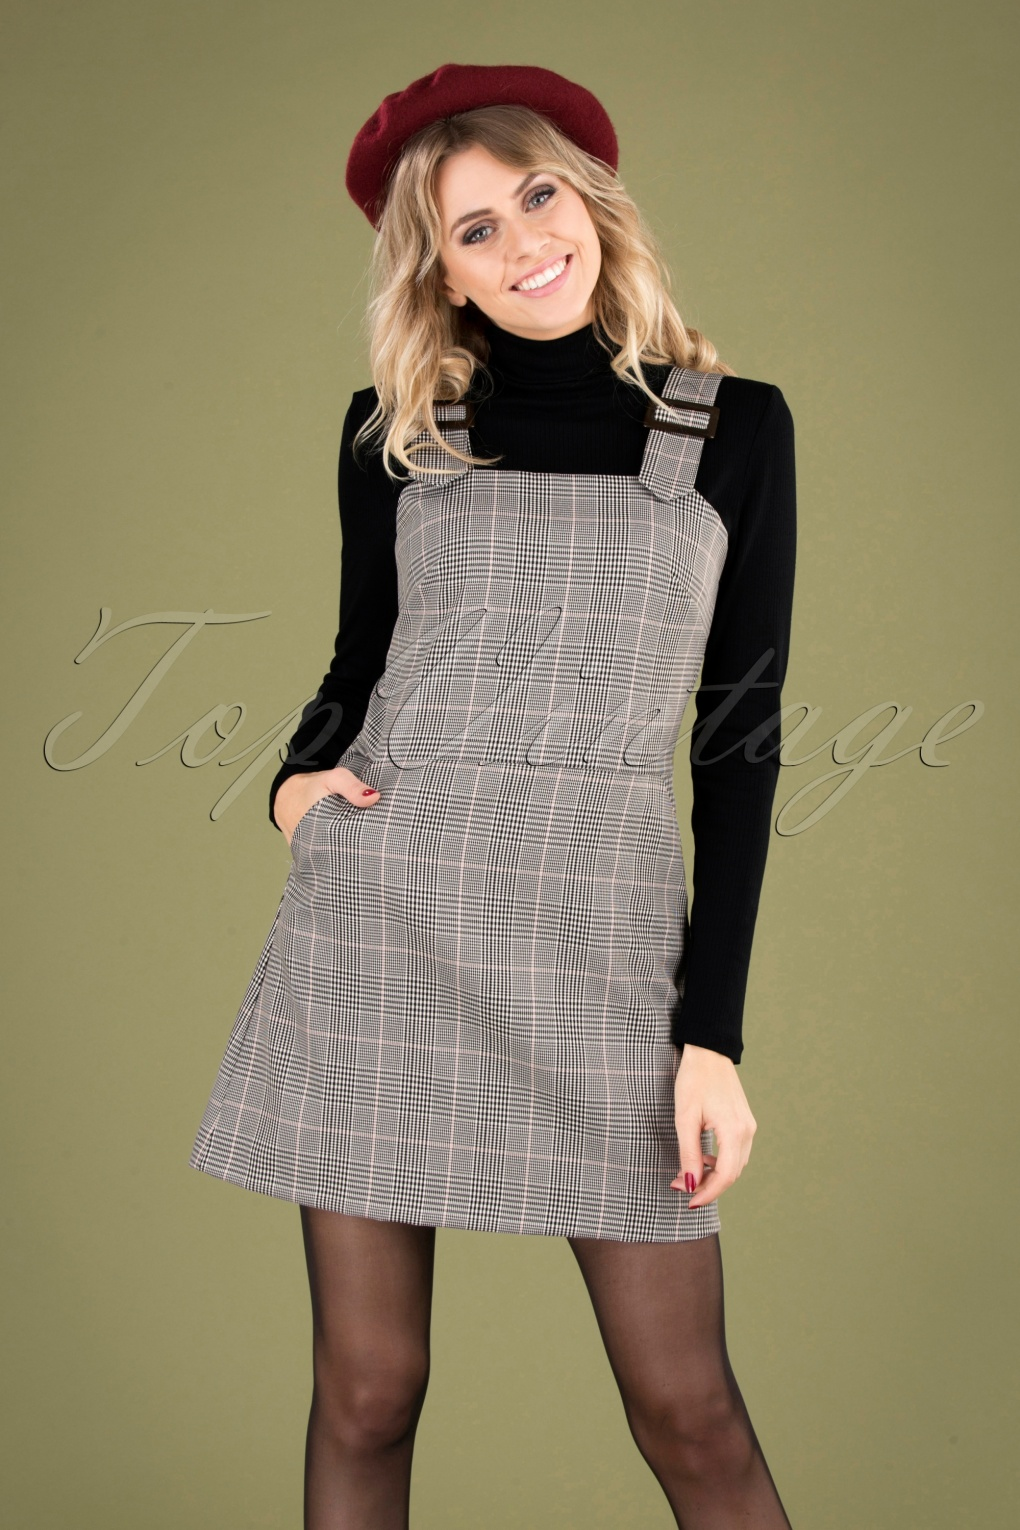 Retro Skirts: Vintage, Pencil, Circle, & Plus Sizes 60s Pic Nic Pinafore Tartan Dress in Black and White £80.19 AT vintagedancer.com